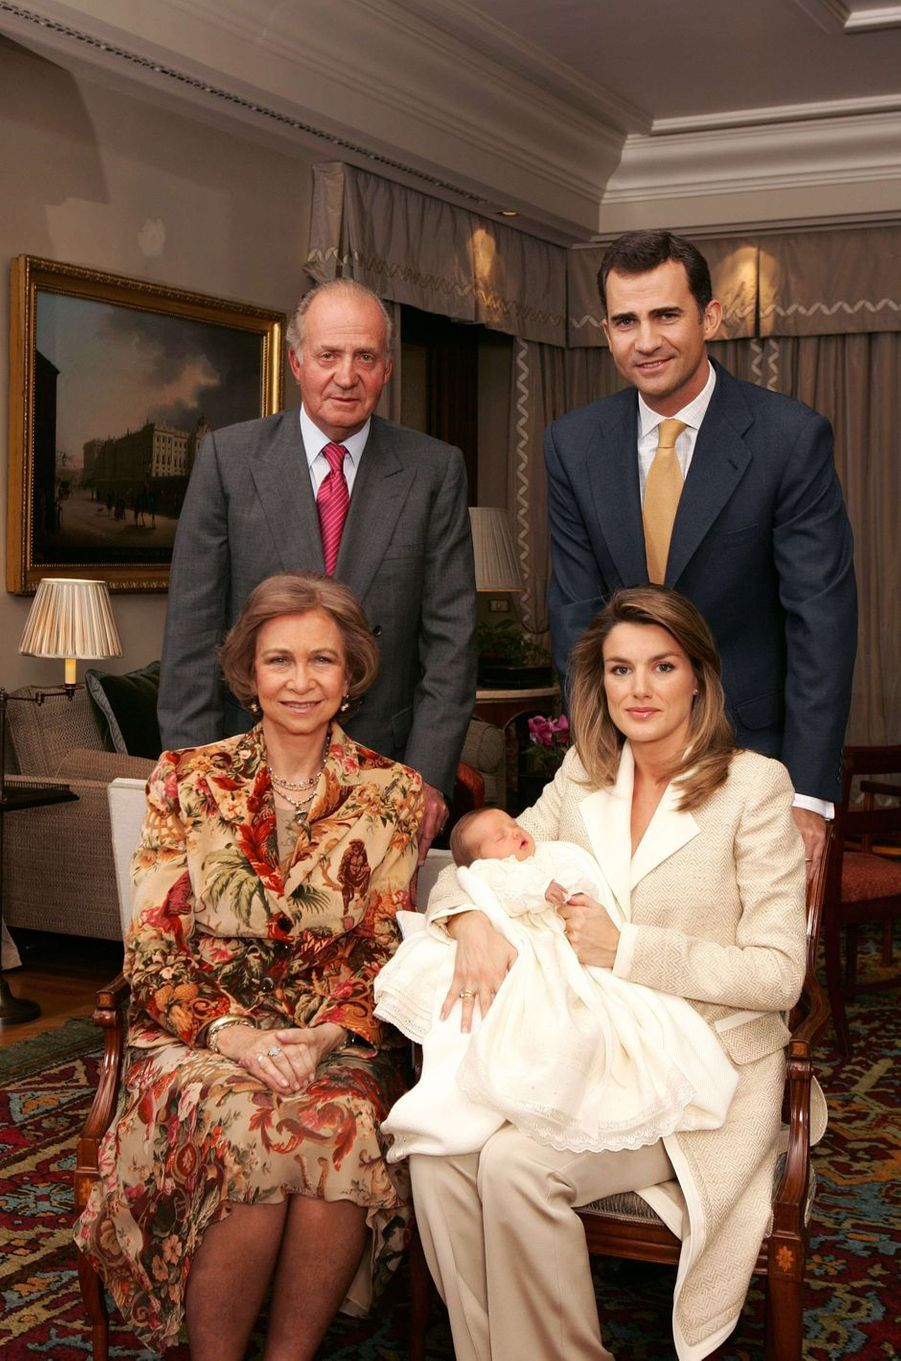 Premier portrait officiel de la princesse Leonor d'Espagne avec ses parents et ses grands-parents paternels, le 7 novembre 2005